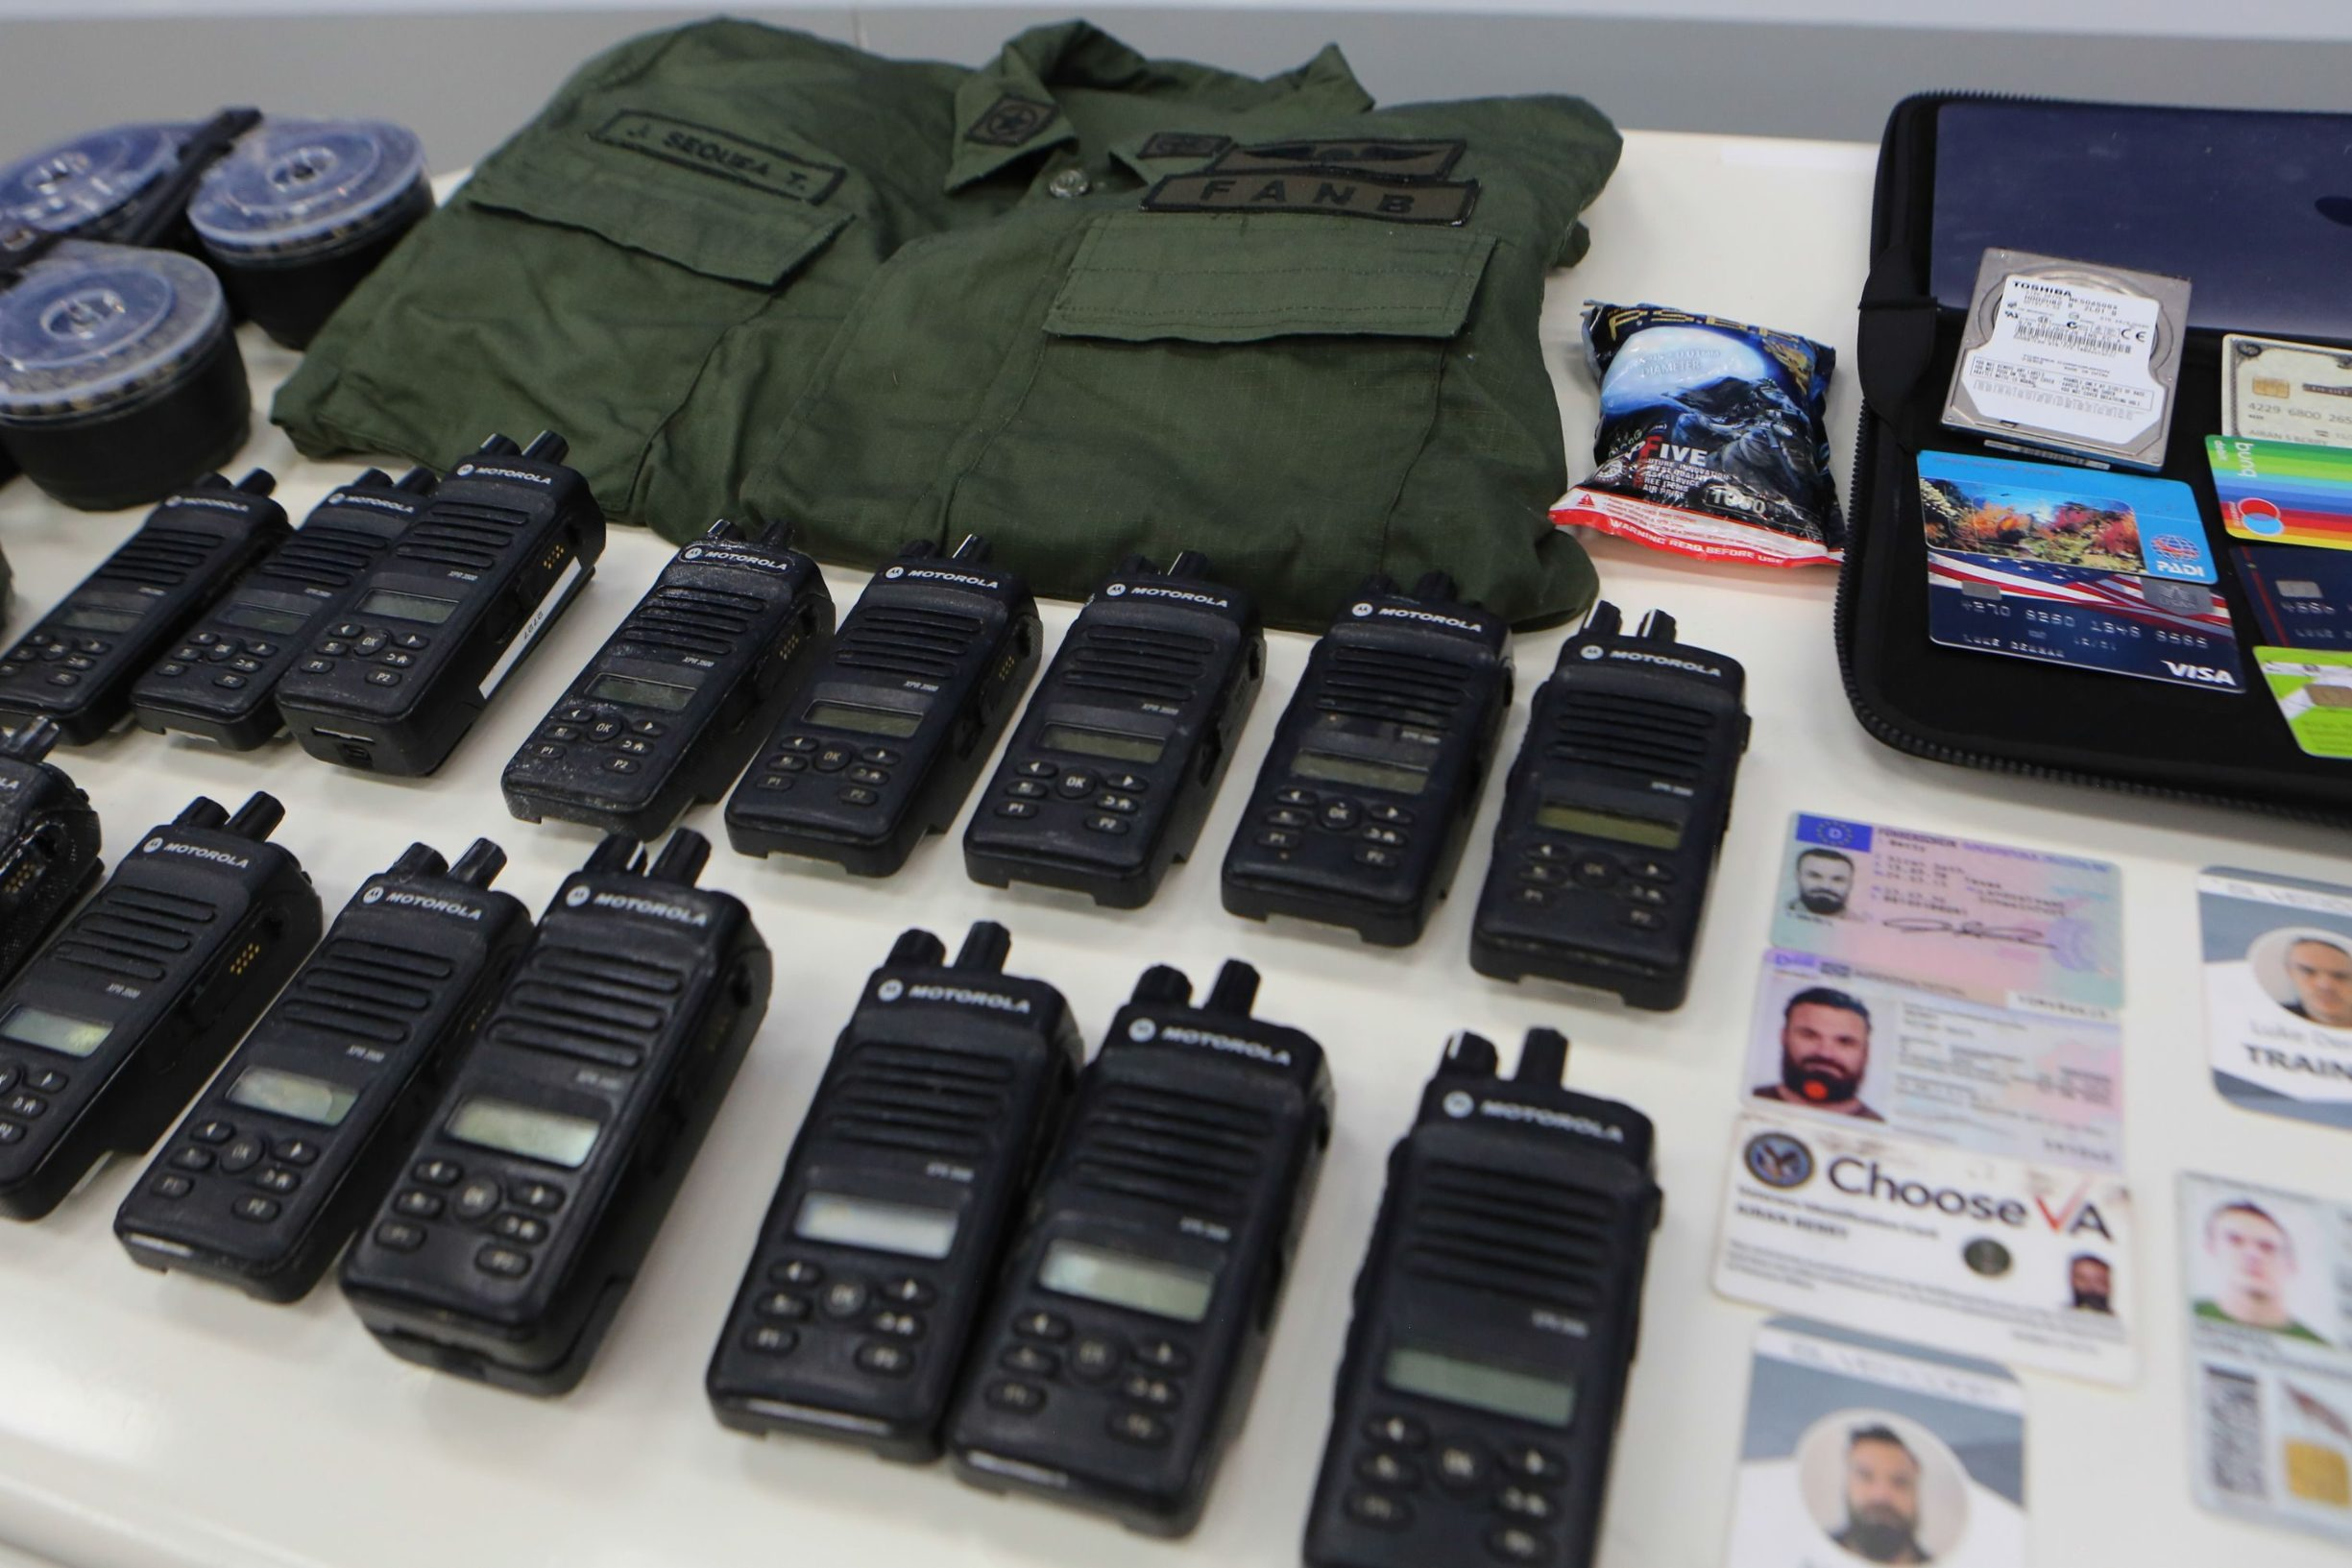 Handout picture released by the Venezuelan Presidency showing identification cards, two-way radios and other military gear allegedly seized to US citizens arrested by security forces during a meeting with members of the Bolivarian National Armed Forces (FANB), at Miraflores Presidential Palace in Caracas on May 4, 2020. - Venezuela is to try two Americans, identified as Luke Denman and Airan Berry, allegedly captured during a failed sea attack by mercenaries, President Nicolas Maduro said on May 6. (Photo by Marcelo Garcia / Venezuelan Presidency / AFP) / RESTRICTED TO EDITORIAL USE - MANDATORY CREDIT